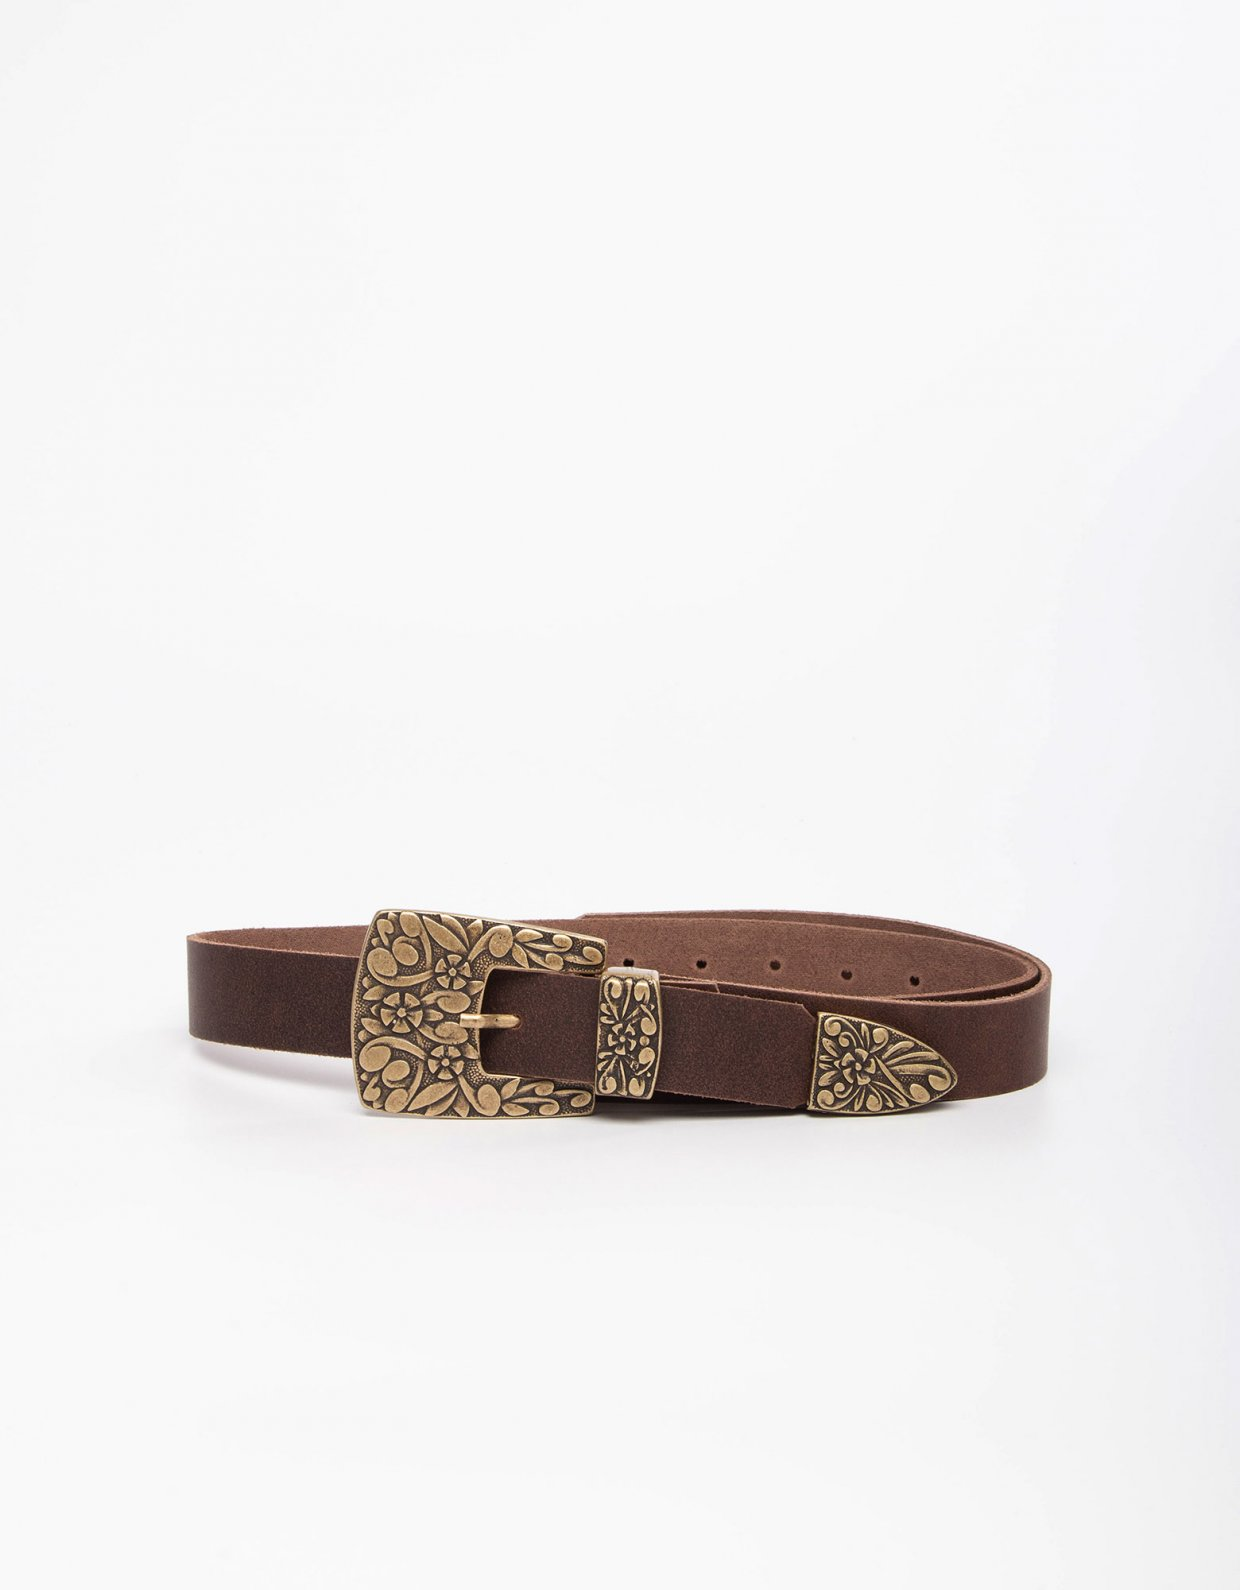 Individual Art Leather Cyclamen  brown belt